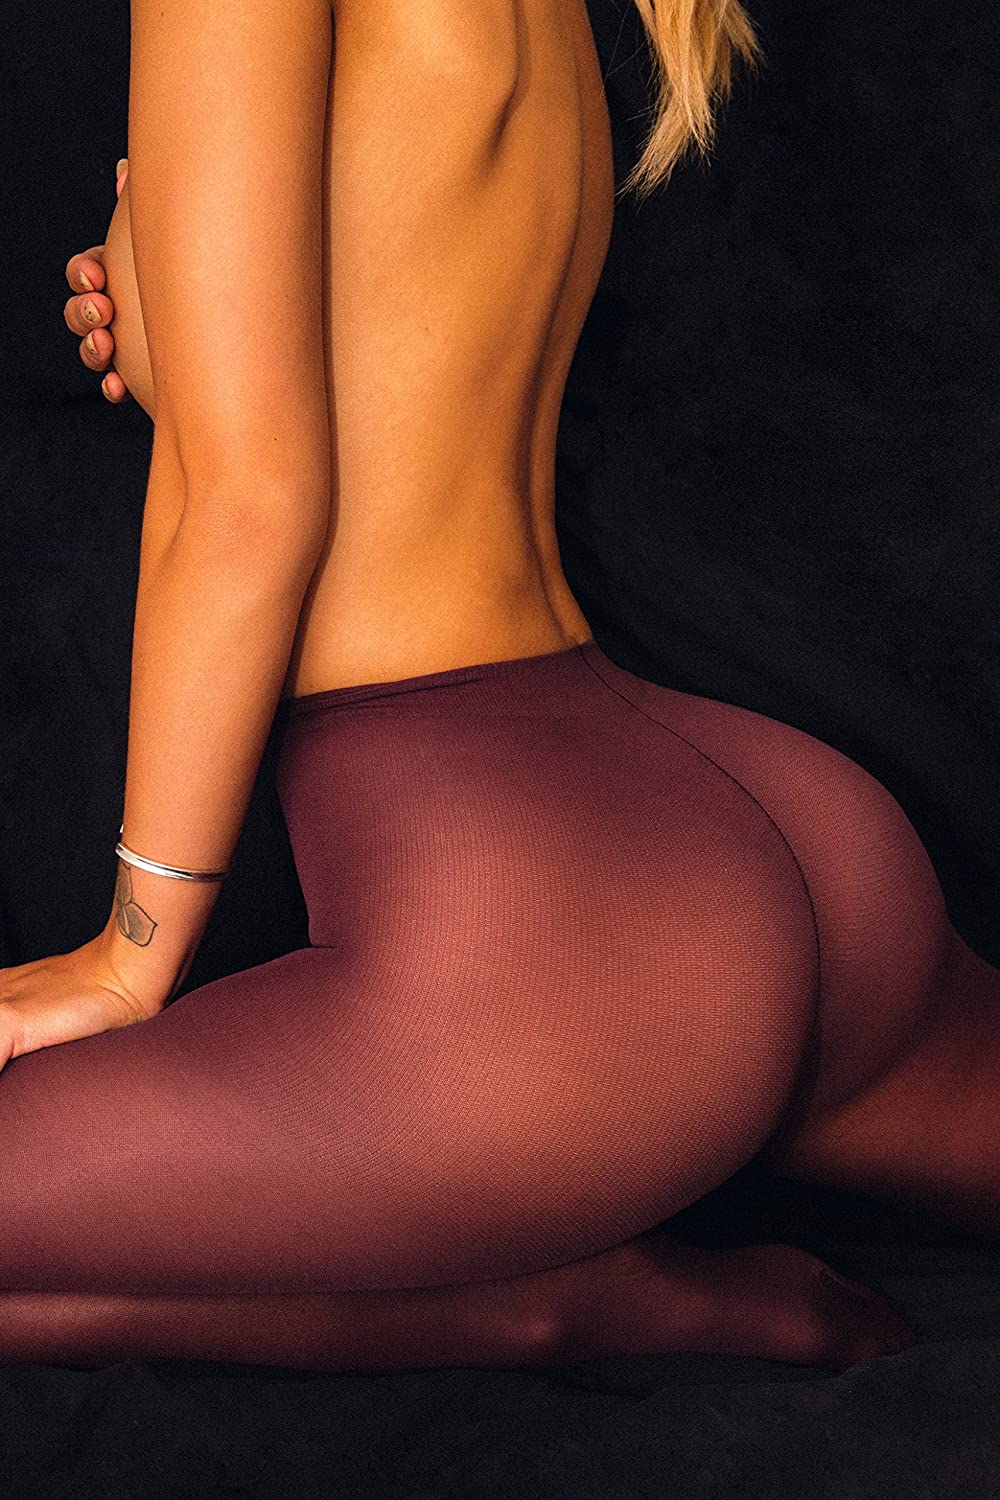 sofsy Opaque Microfibre Tights Invisibly Reinforced Opaque Control Top Brief Pantyhose Pantyhose 40Den Made In Italy